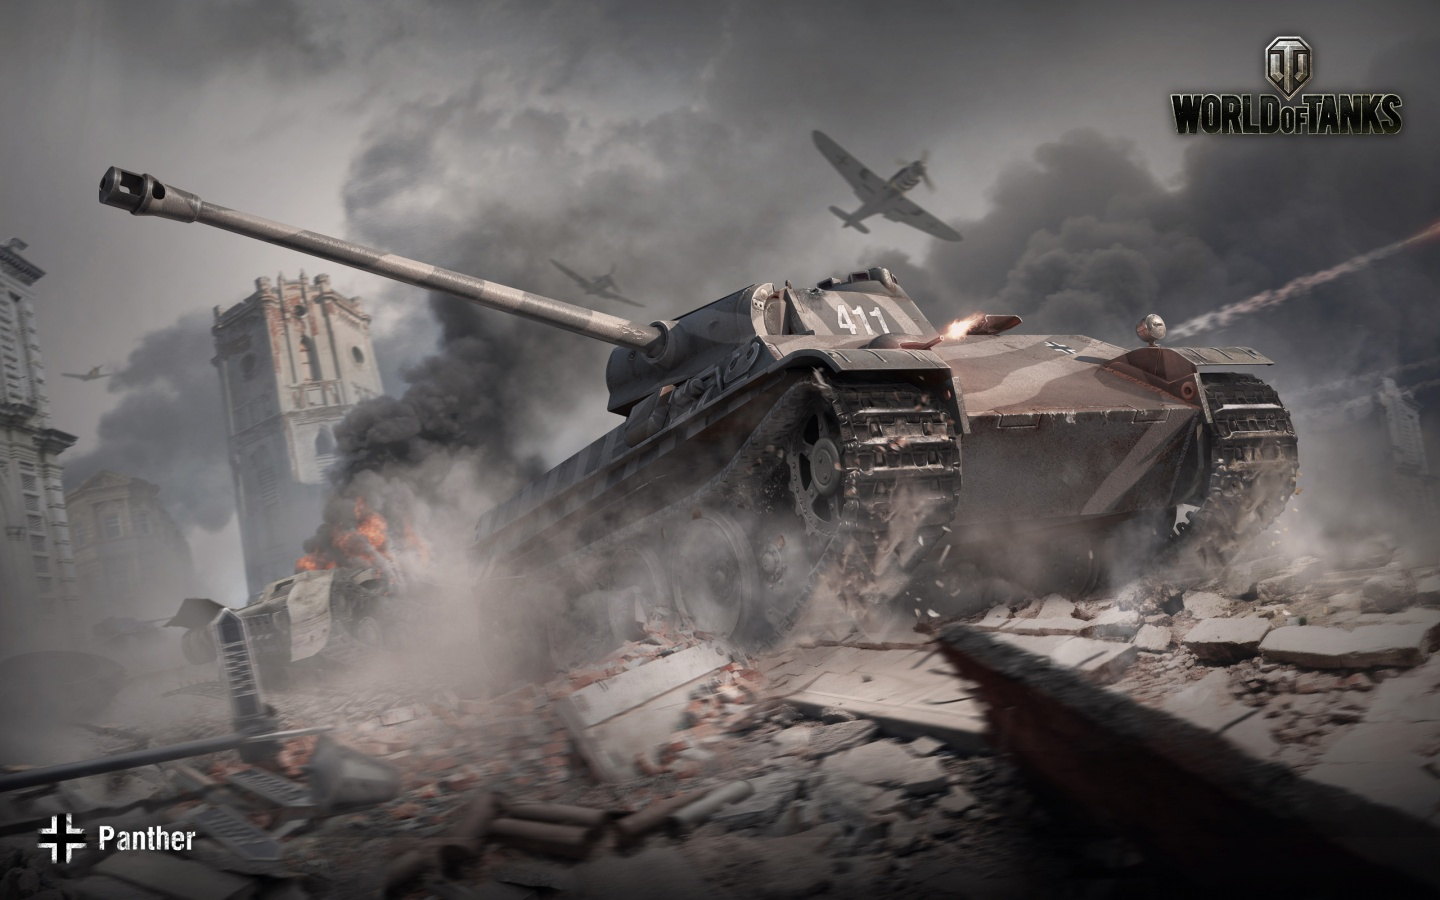 panther world of tanks #4140016, 2560x1600 | all for desktop